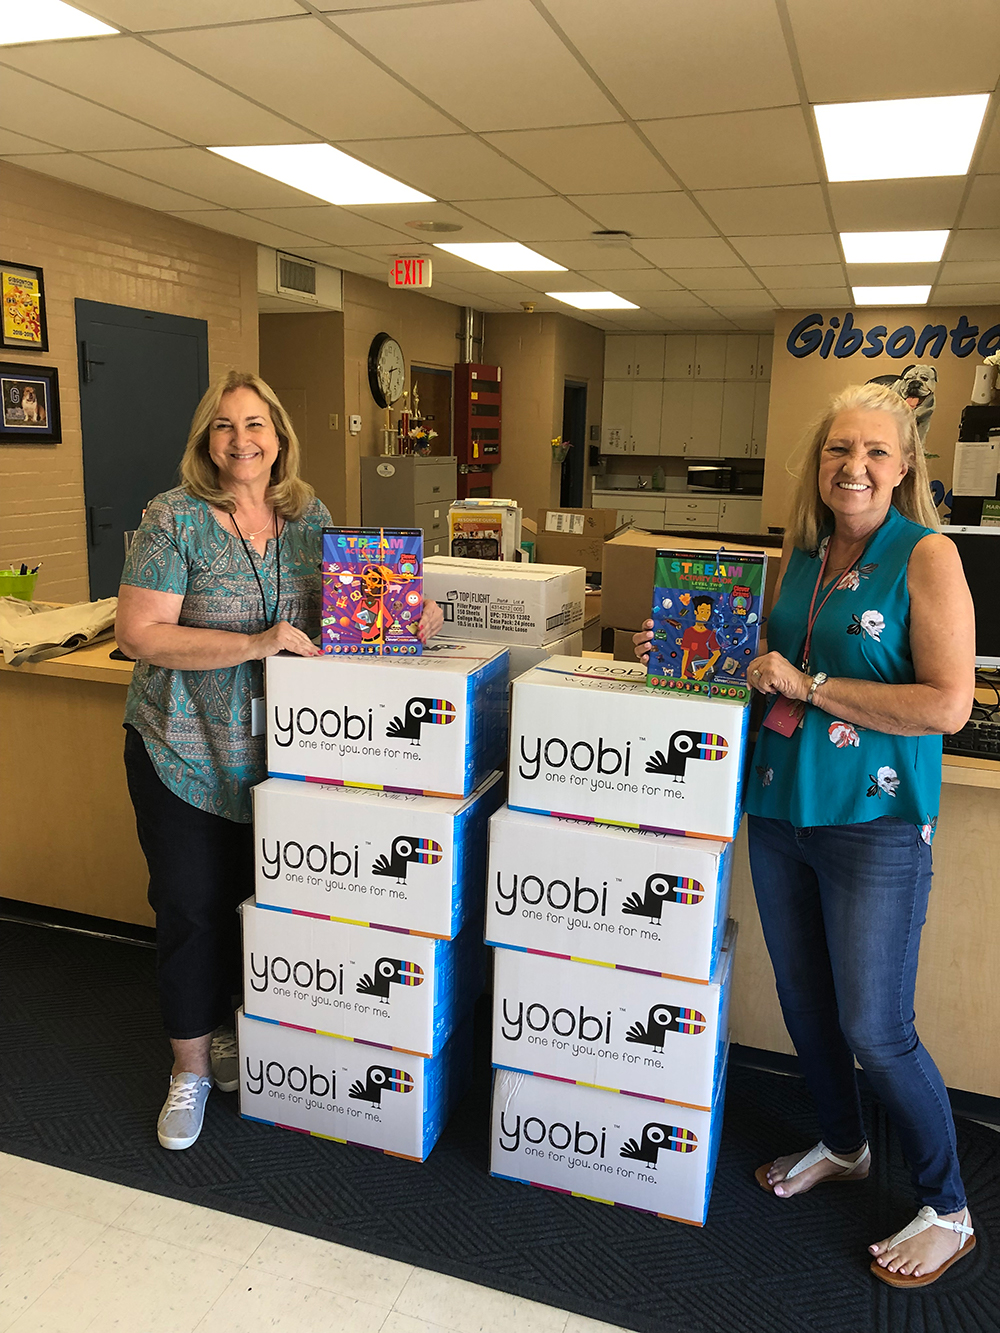 Staff at Gibsonton Elementary pose with supplies provided by Hillsborough Education Foundation